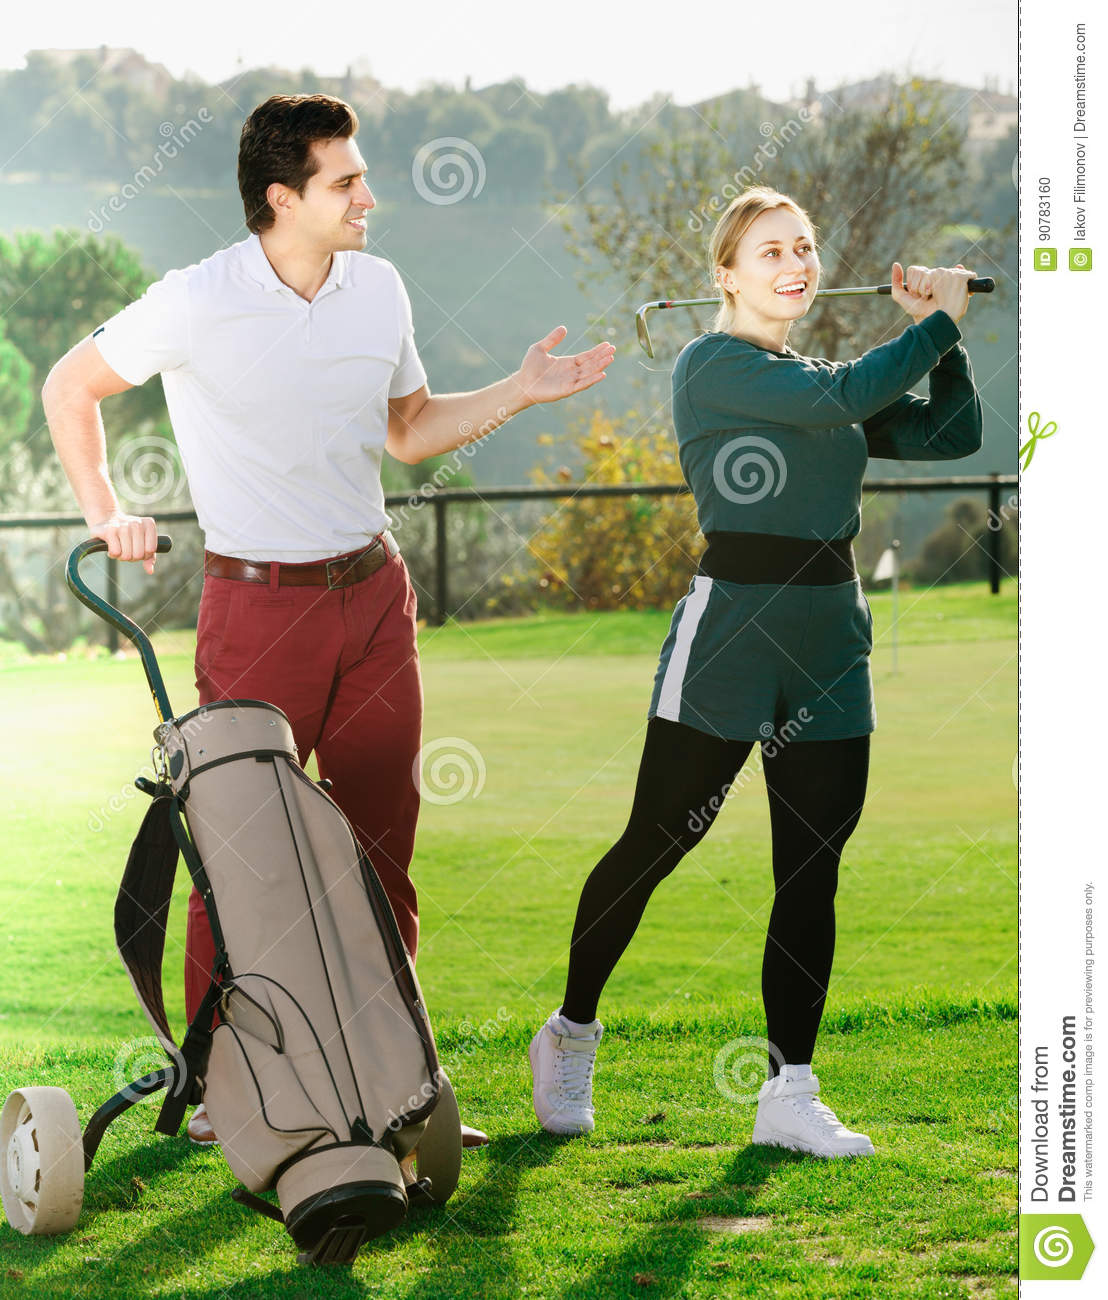 Man 30-35 years old is showing woman 25-29 years old to play golf